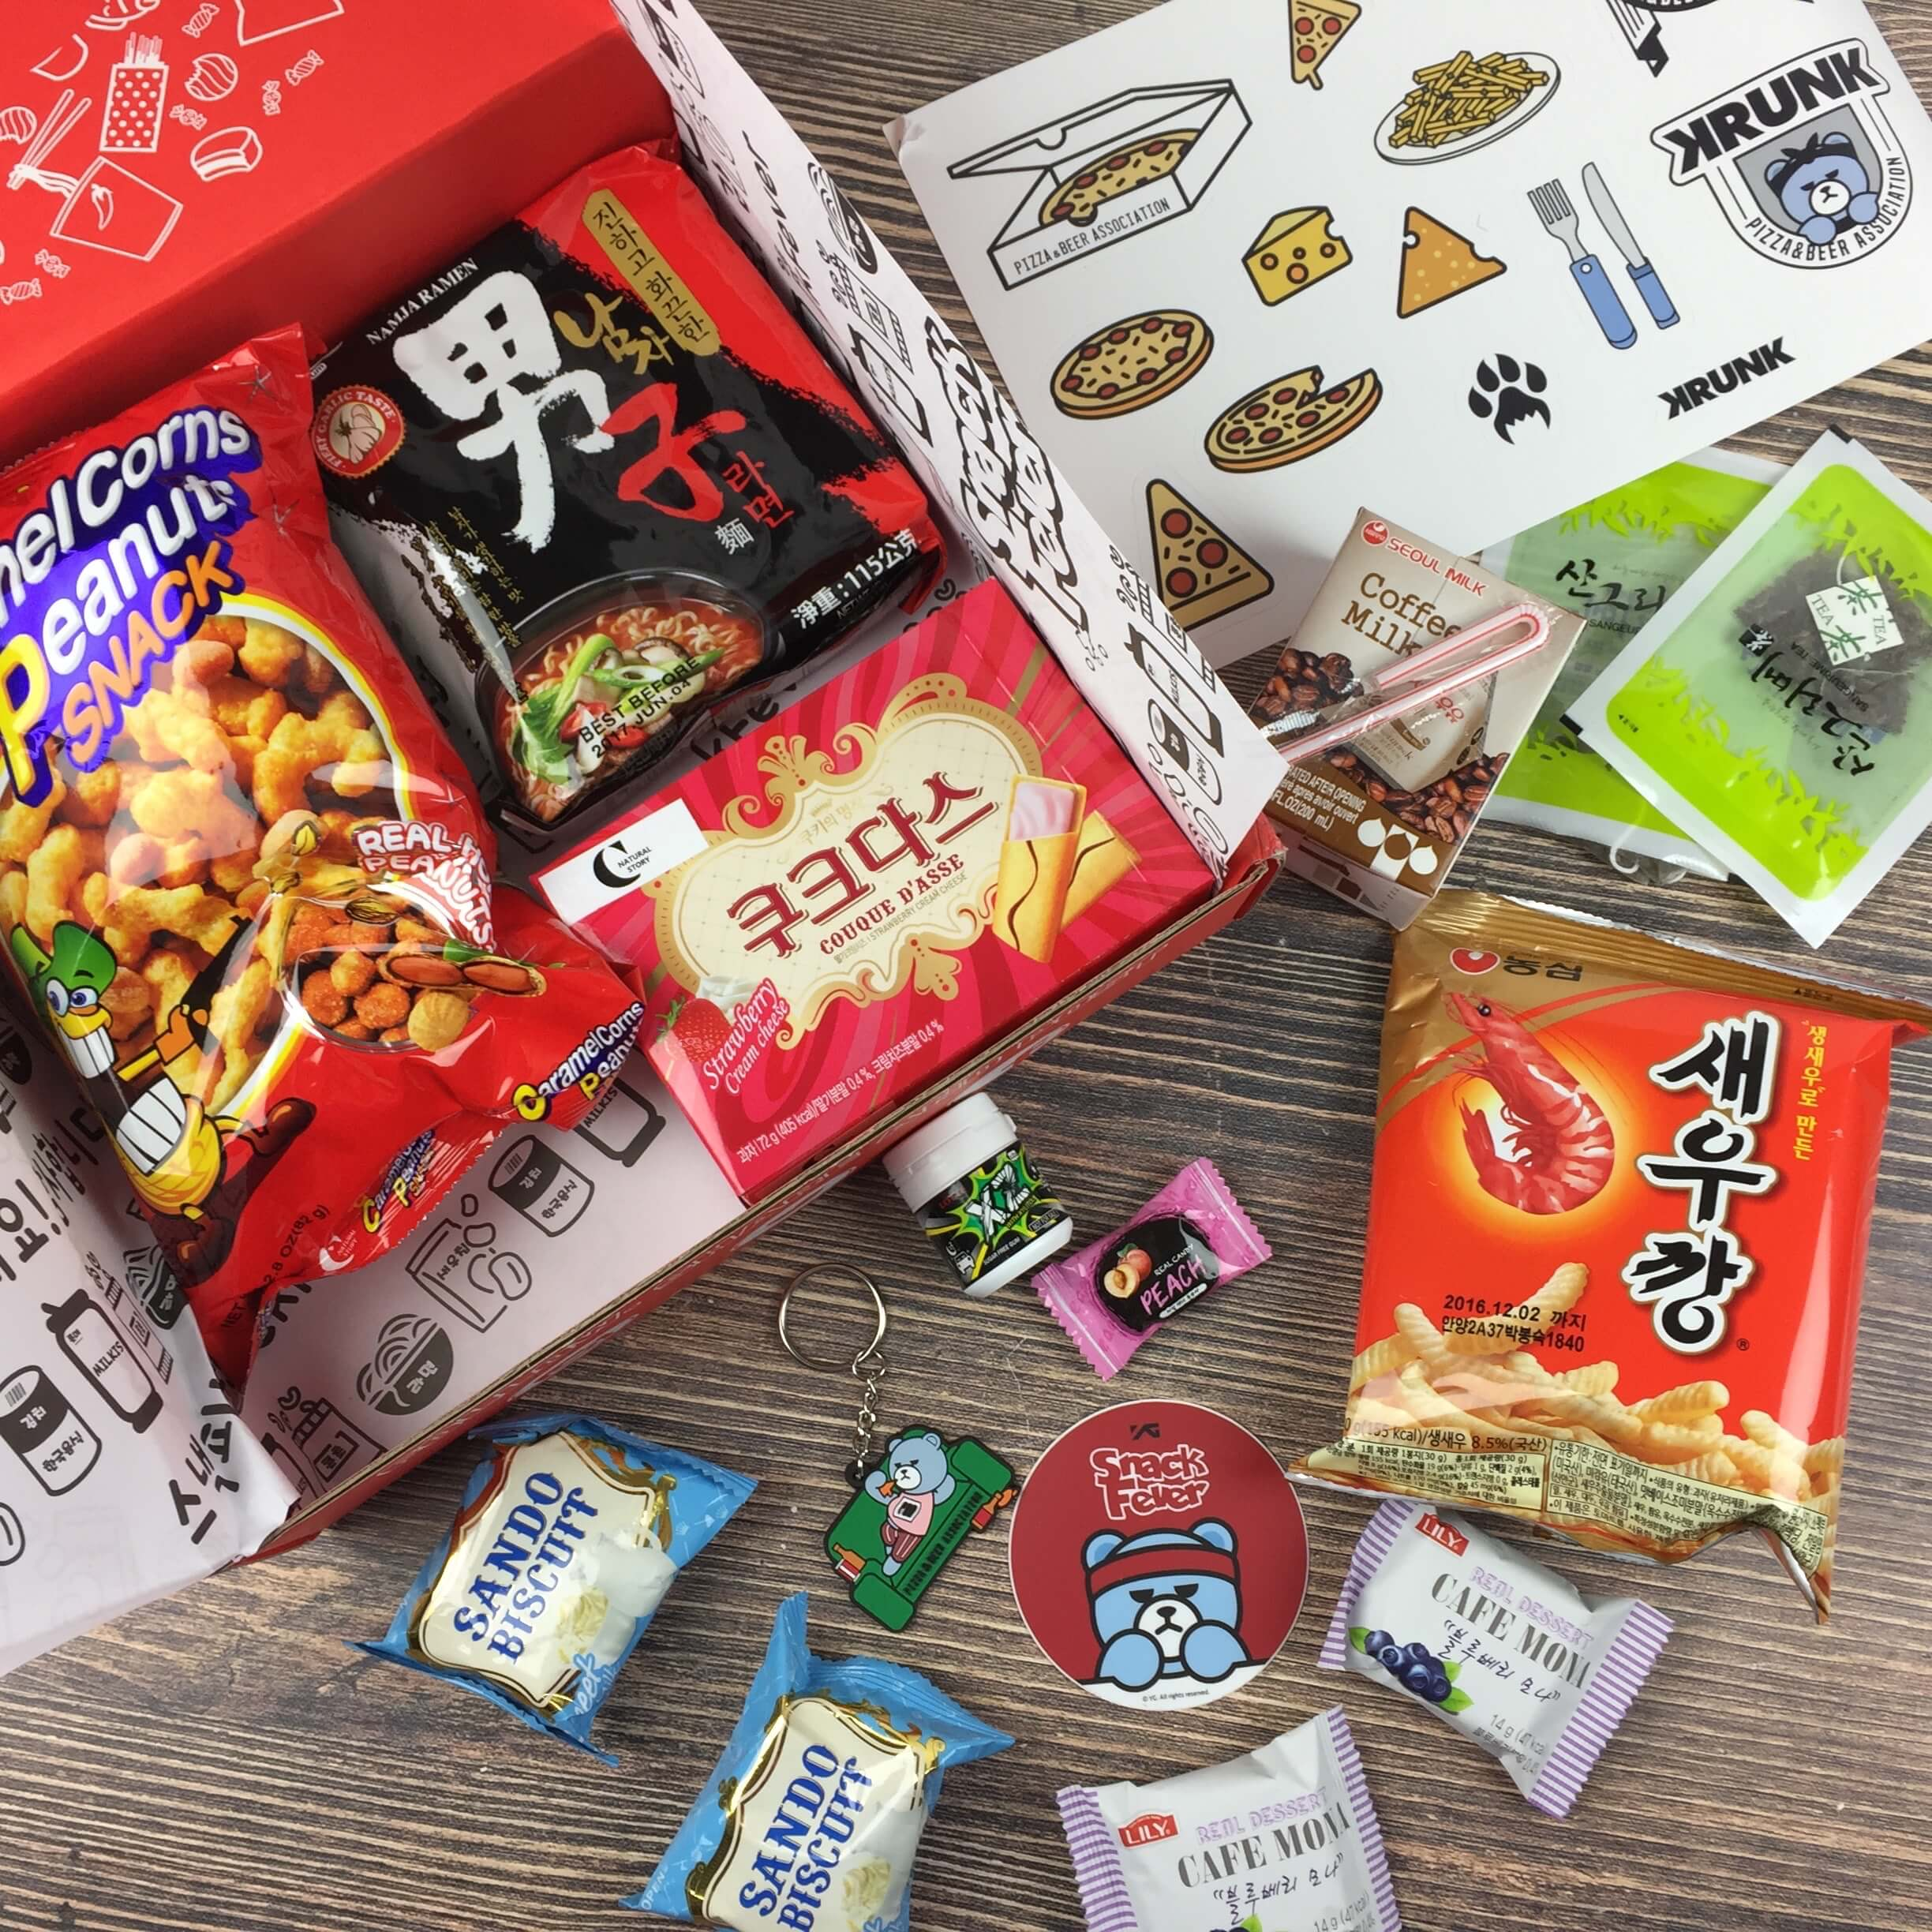 September 2016 Snack Fever Subscription Box Review + Coupon